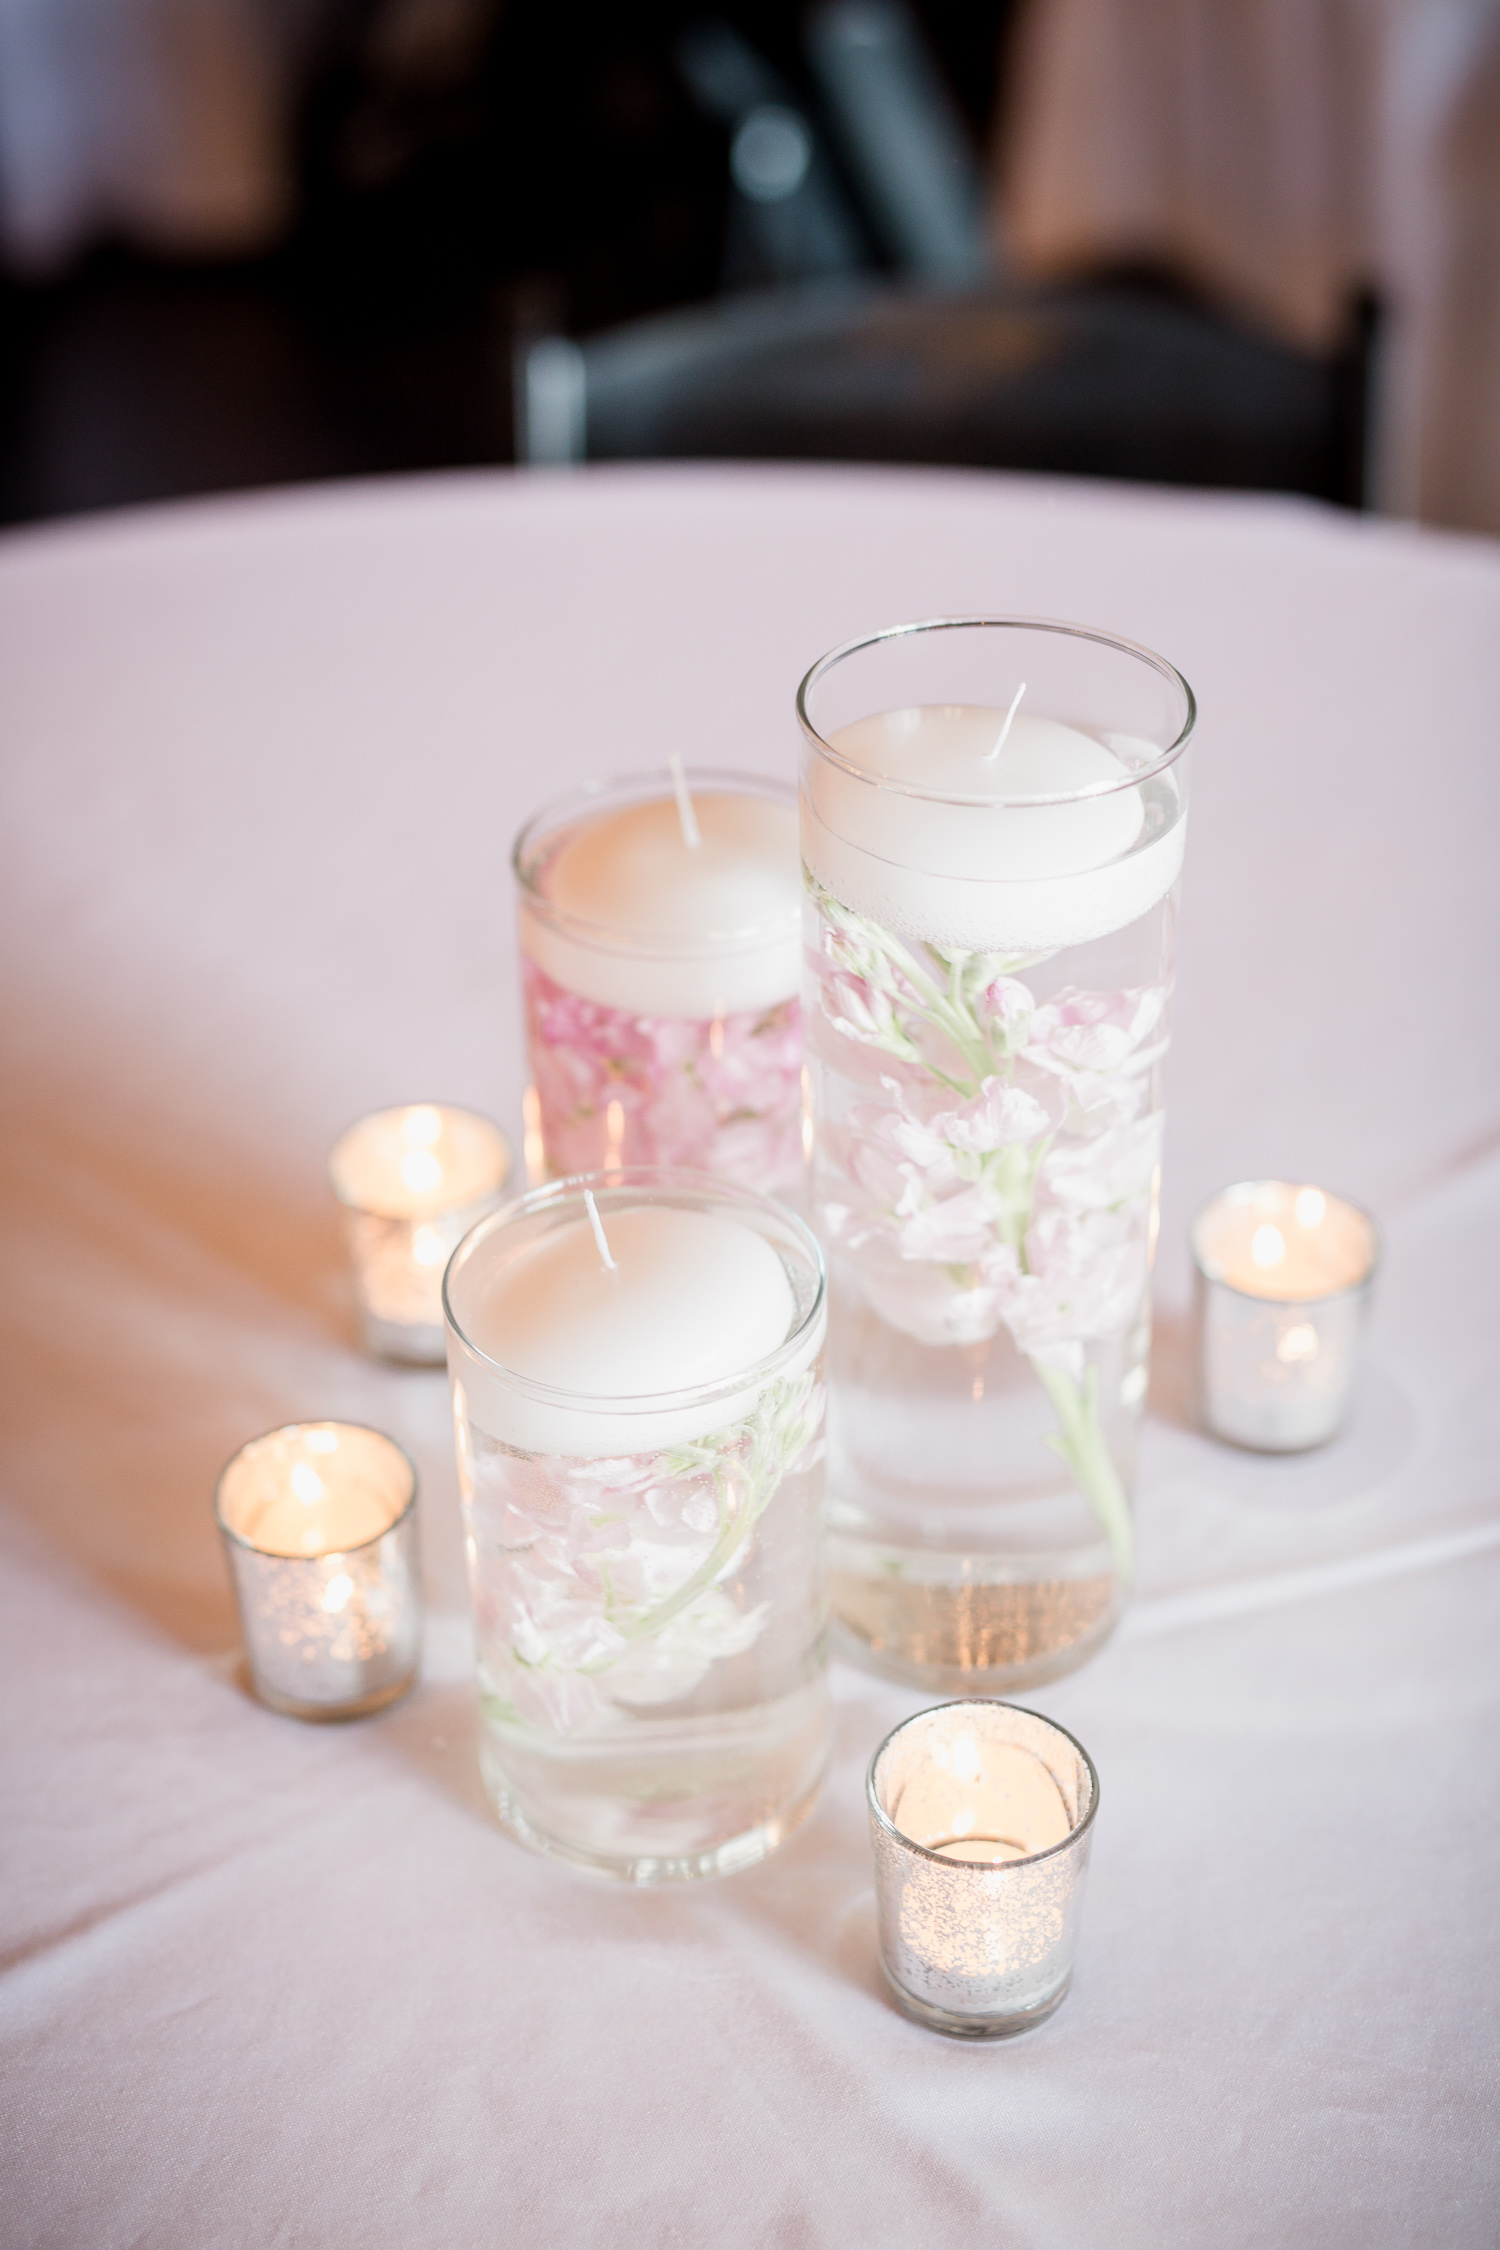 Downtown Knoxville Wedding Venue // Central Avenue Reception // Bridesmaids // Relix Knoxville Floral Design Floating Candles and Orchids